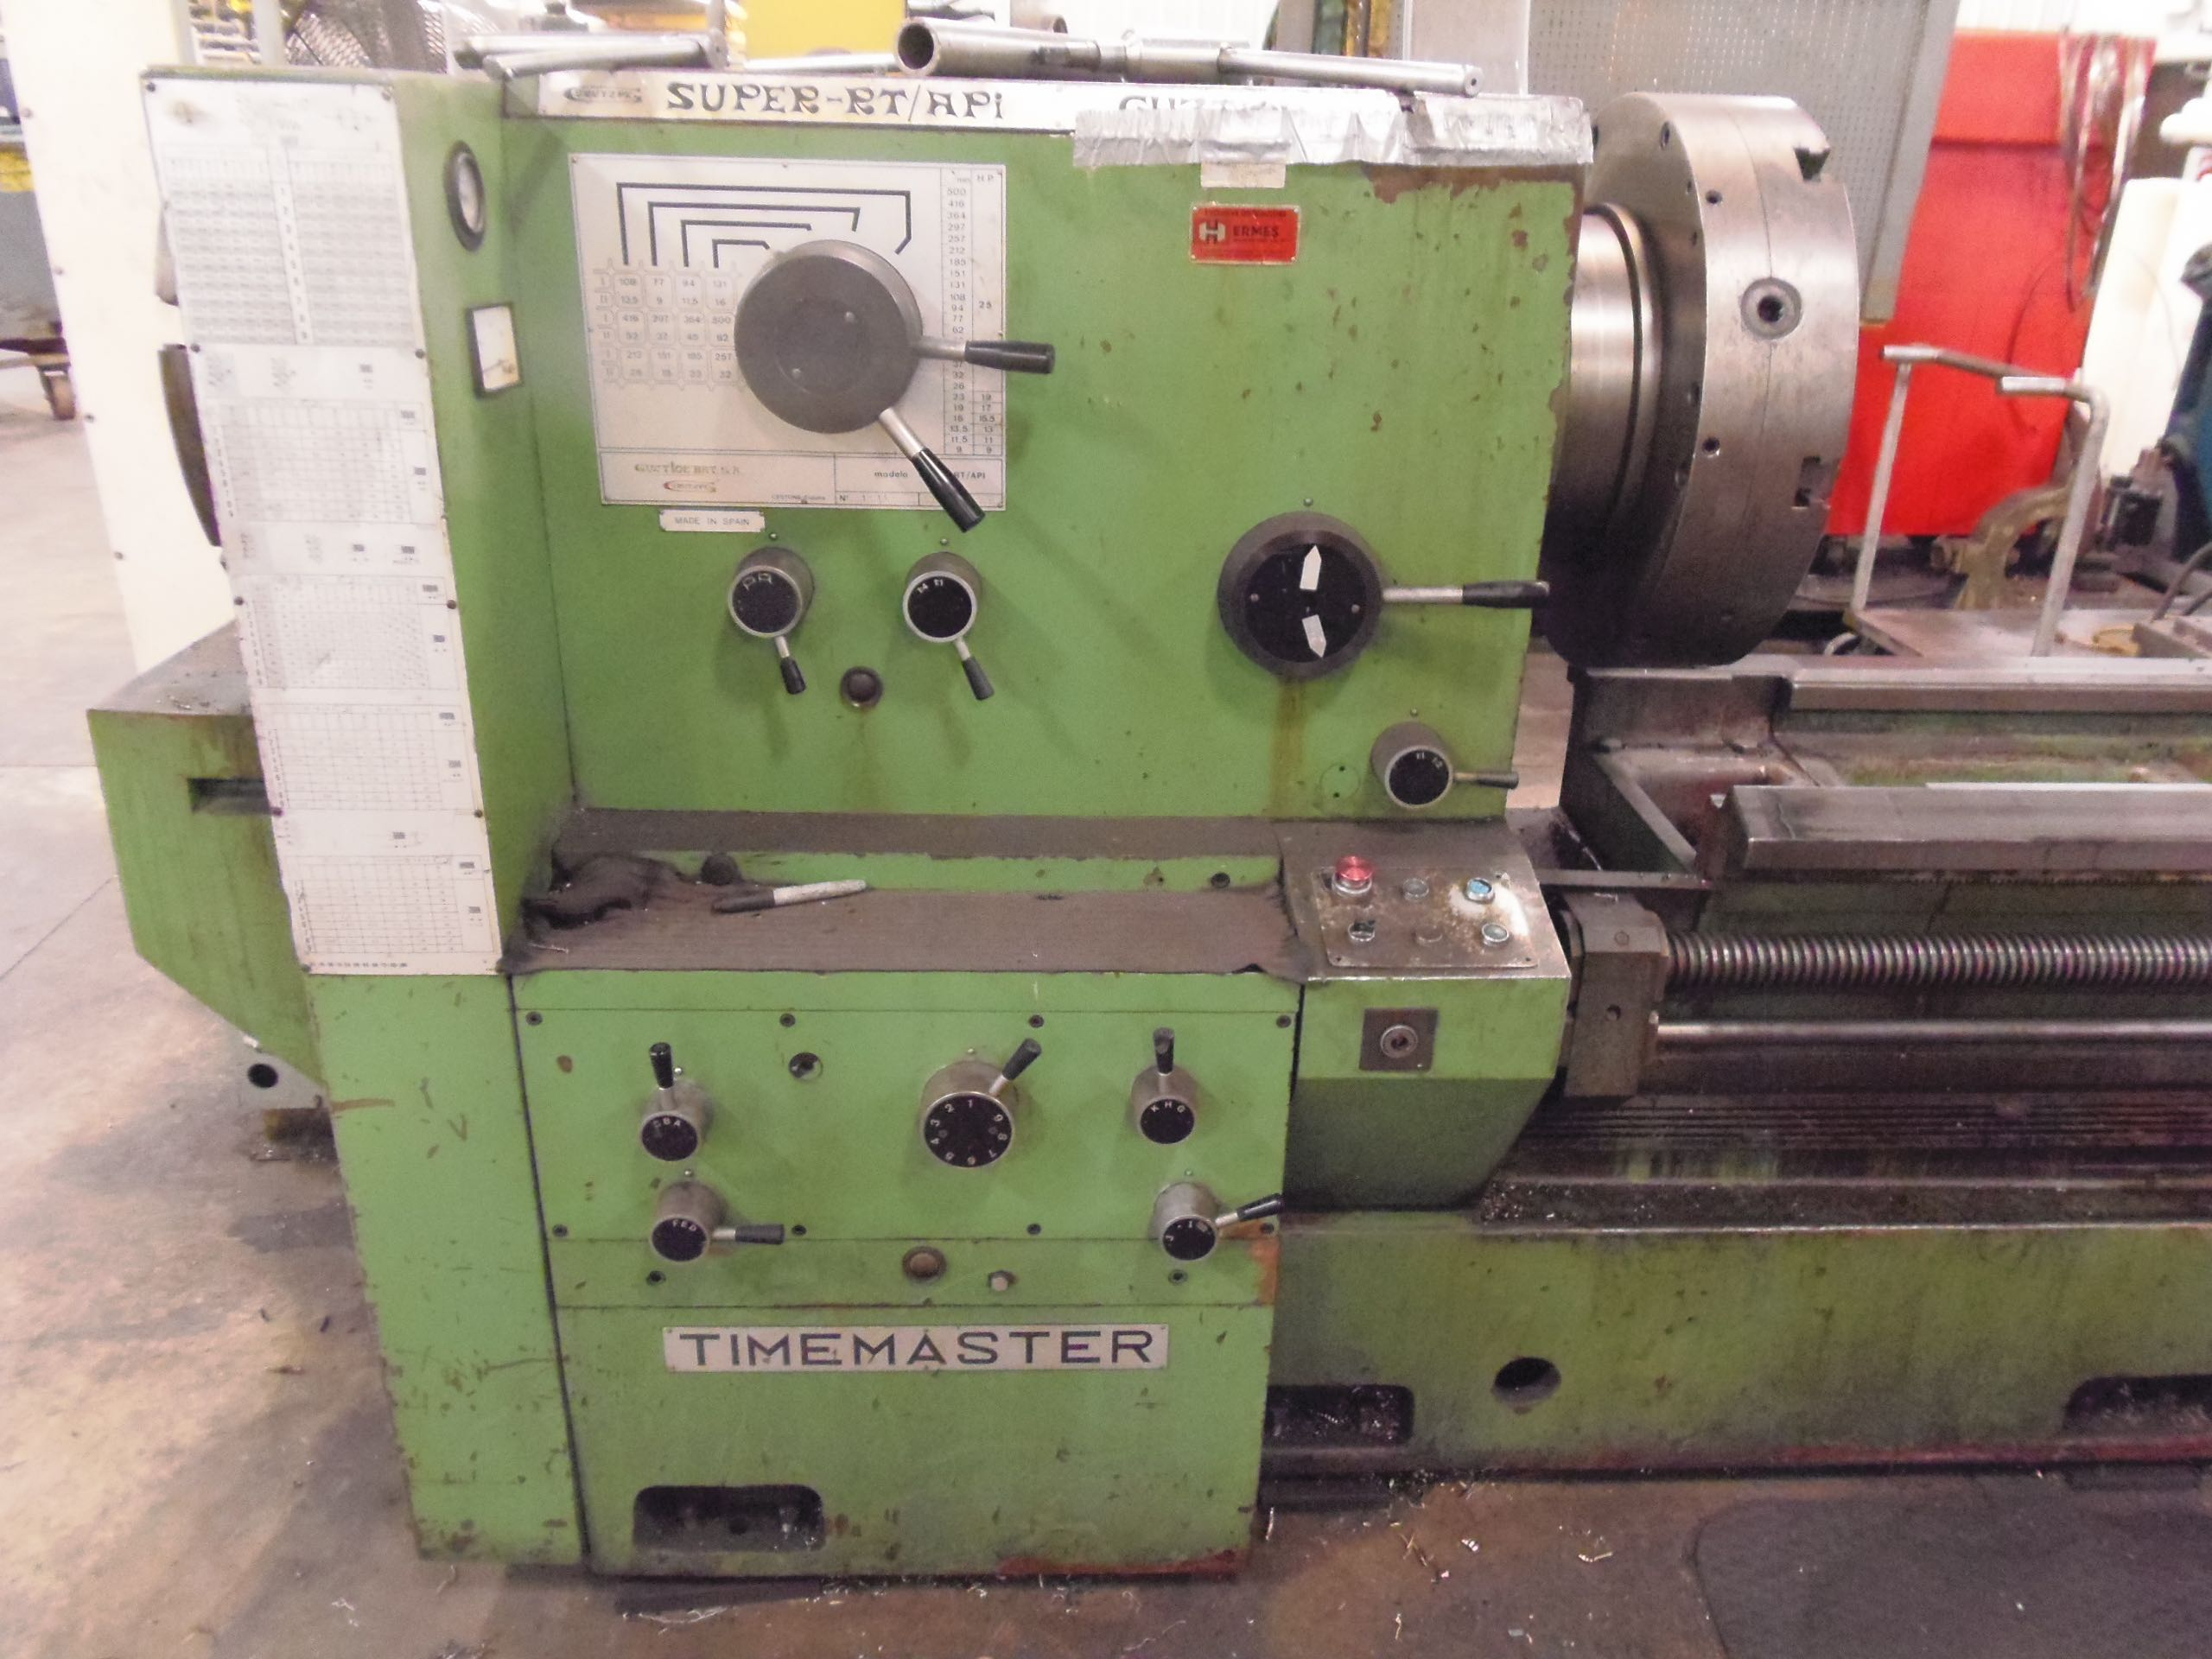 "32"" X 120"" TIMEMASTER / GURUTZPE OIL COUNTRY ENGINE LATHE, 10"" HOLE, F & R 10"" HOLE CHUCKS, 500 RPM, RAPIDS, 32"" GAP, 19"" OC,  TAPER, AUTO THREADING, NICE!, 1982"